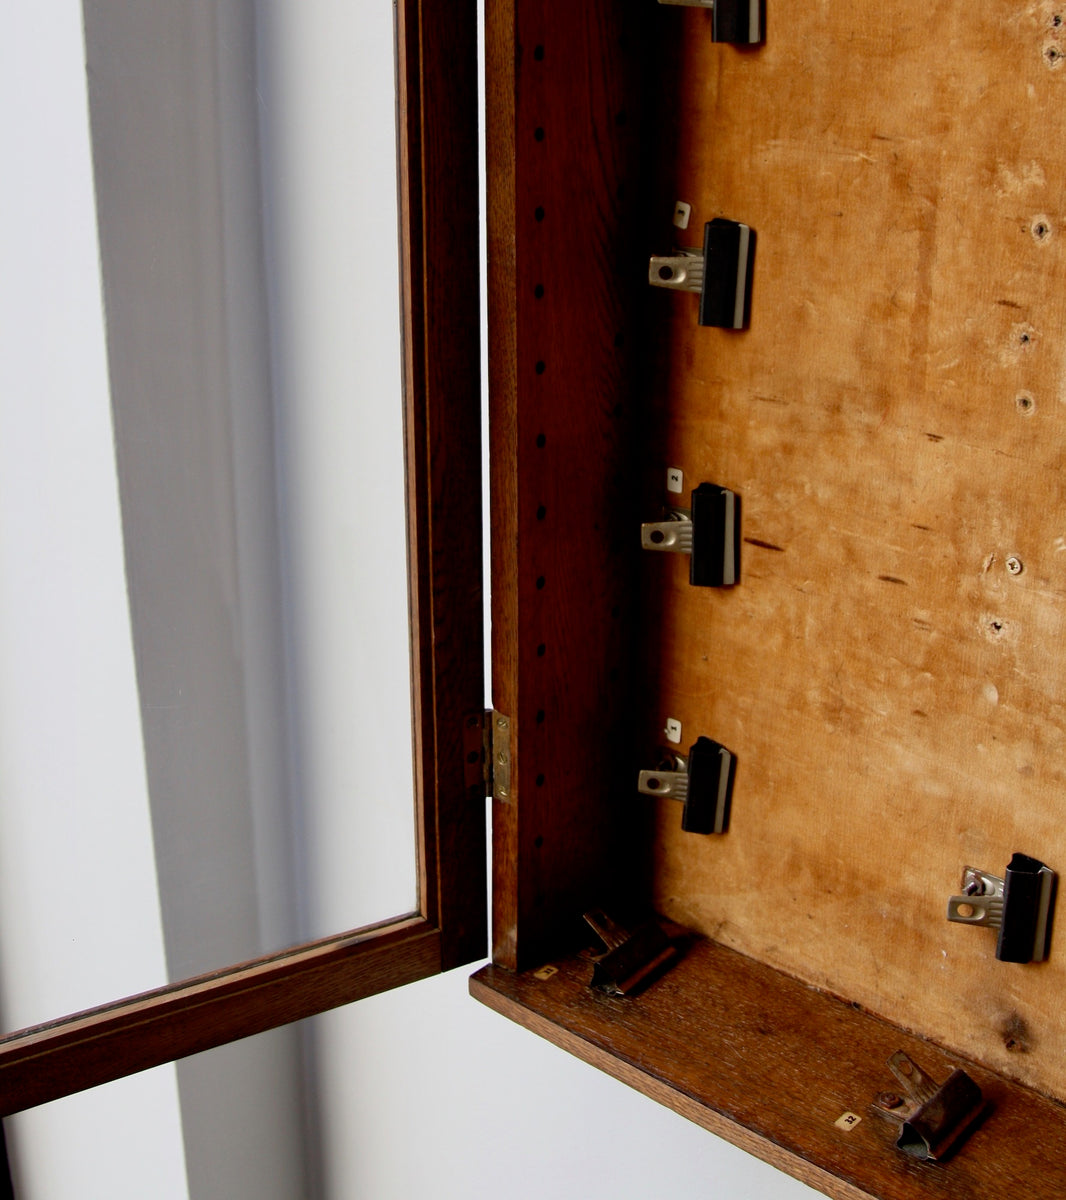 Museum Cabinet England, C.1900 - original Museum cabinet English cabinetmaking oak furniture classic furniture wallmounted display cabinet glazed cabinet quality made in England v&a museum English museum